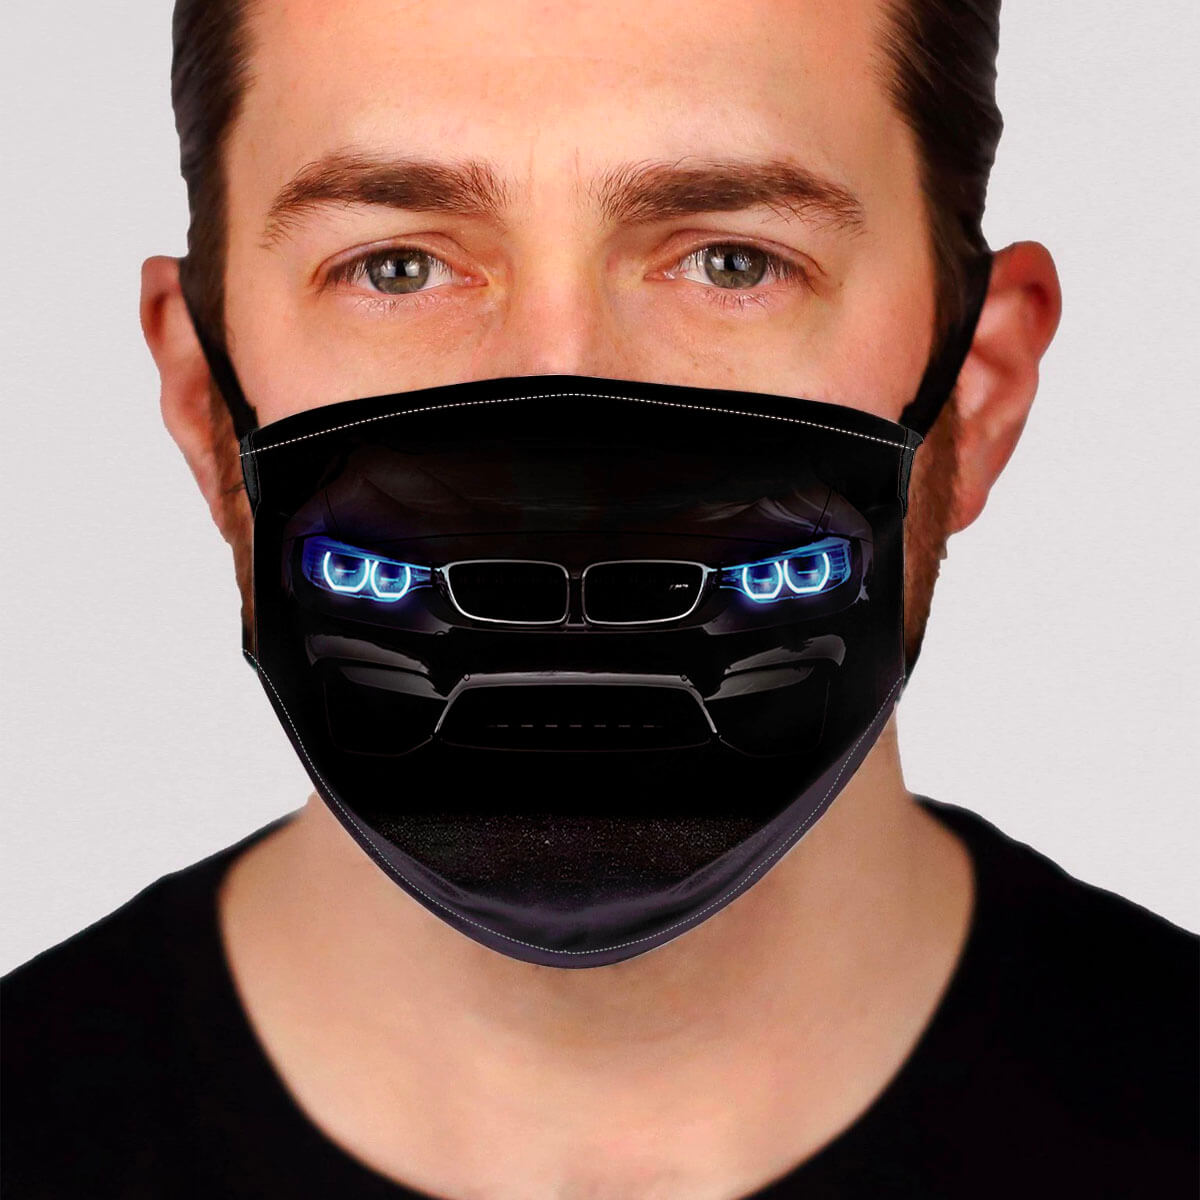 B.M.W Headlights Face Mask